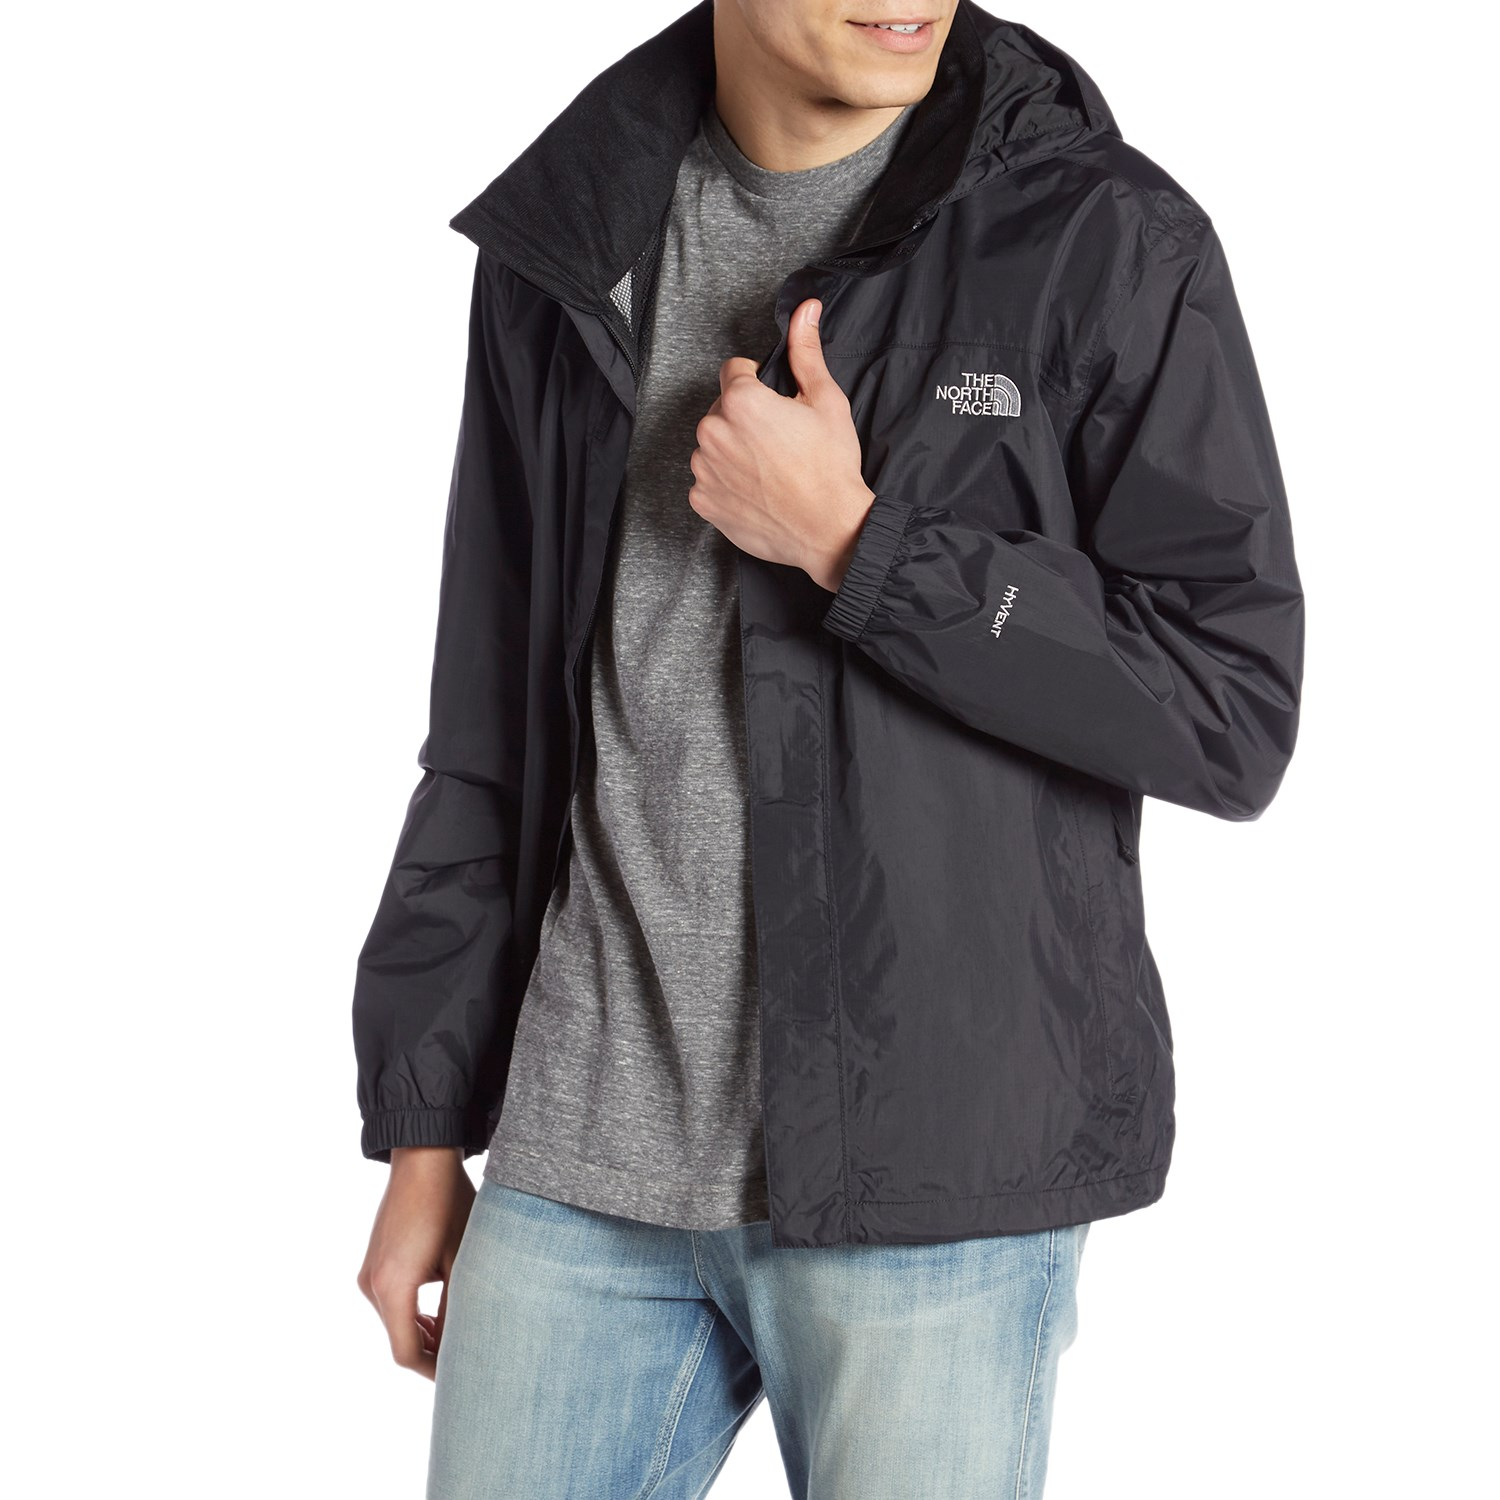 439748de4 The North Face Resolve Jacket